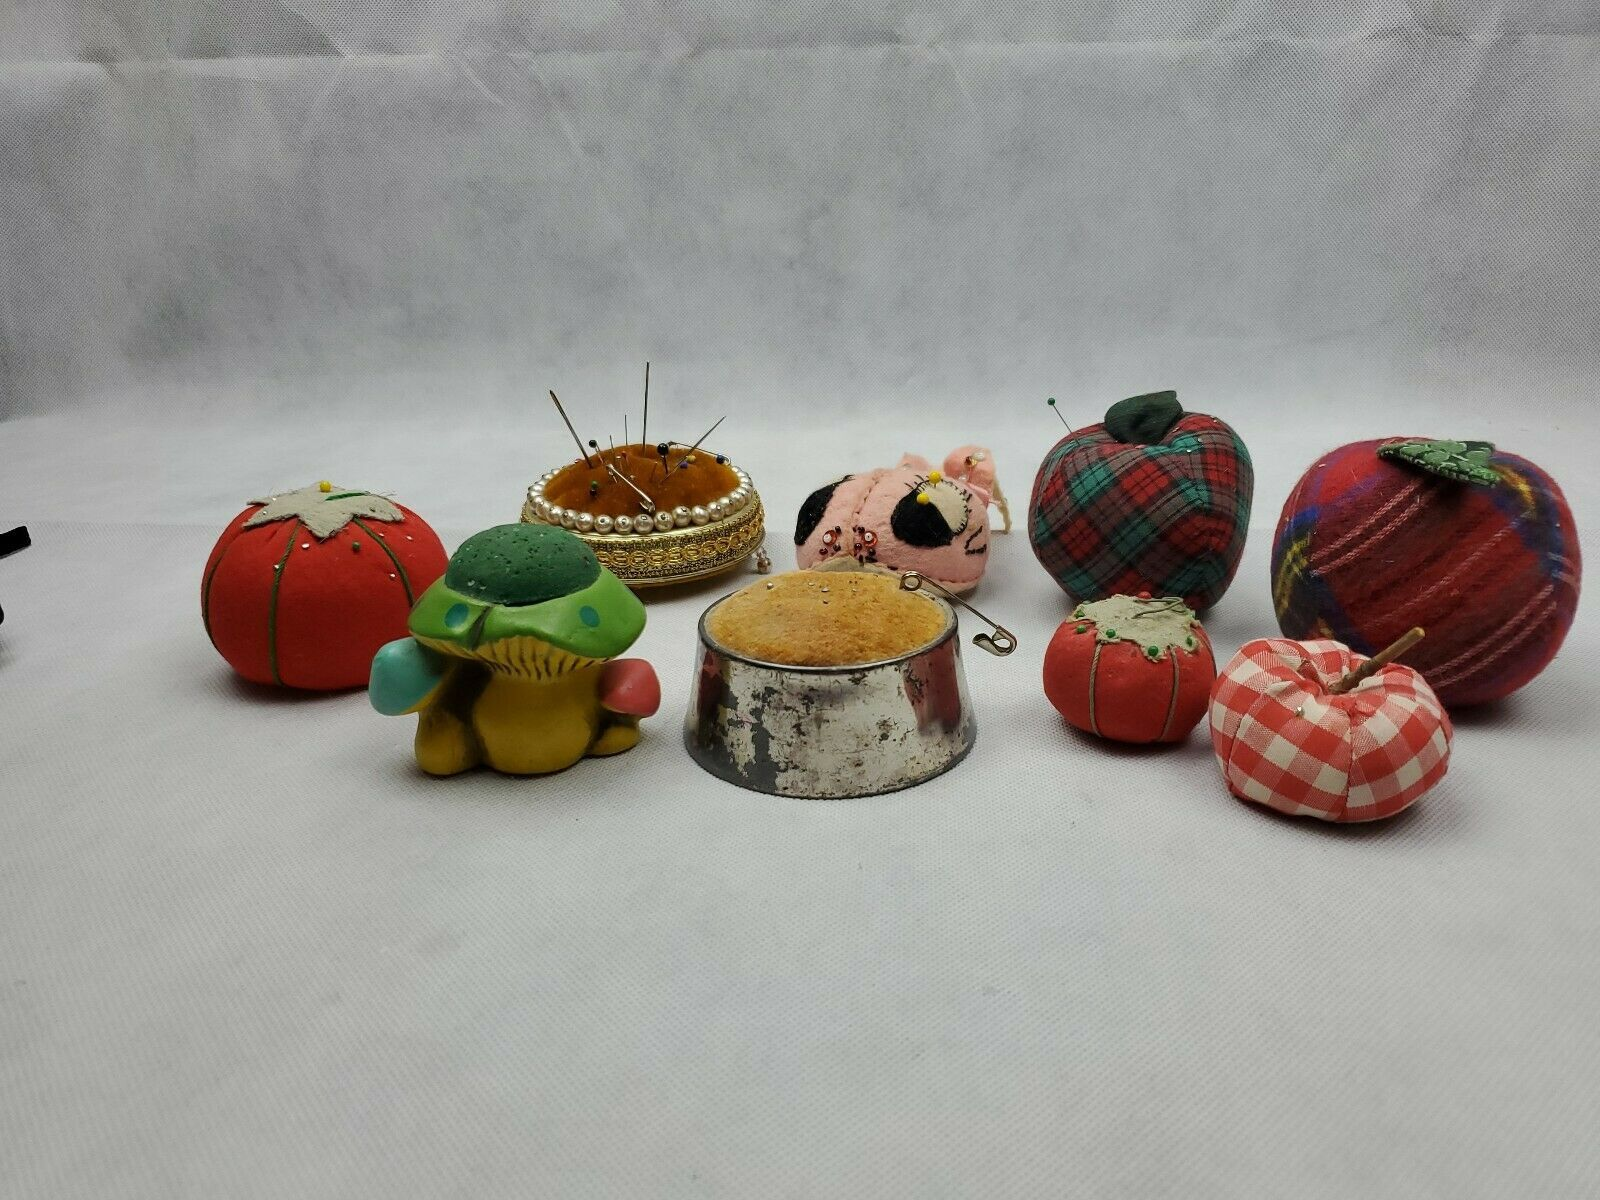 Huge Lot of 9 Vintage Pin Cushions Tomatoes apple mushroom metal Needle Sewing image 2